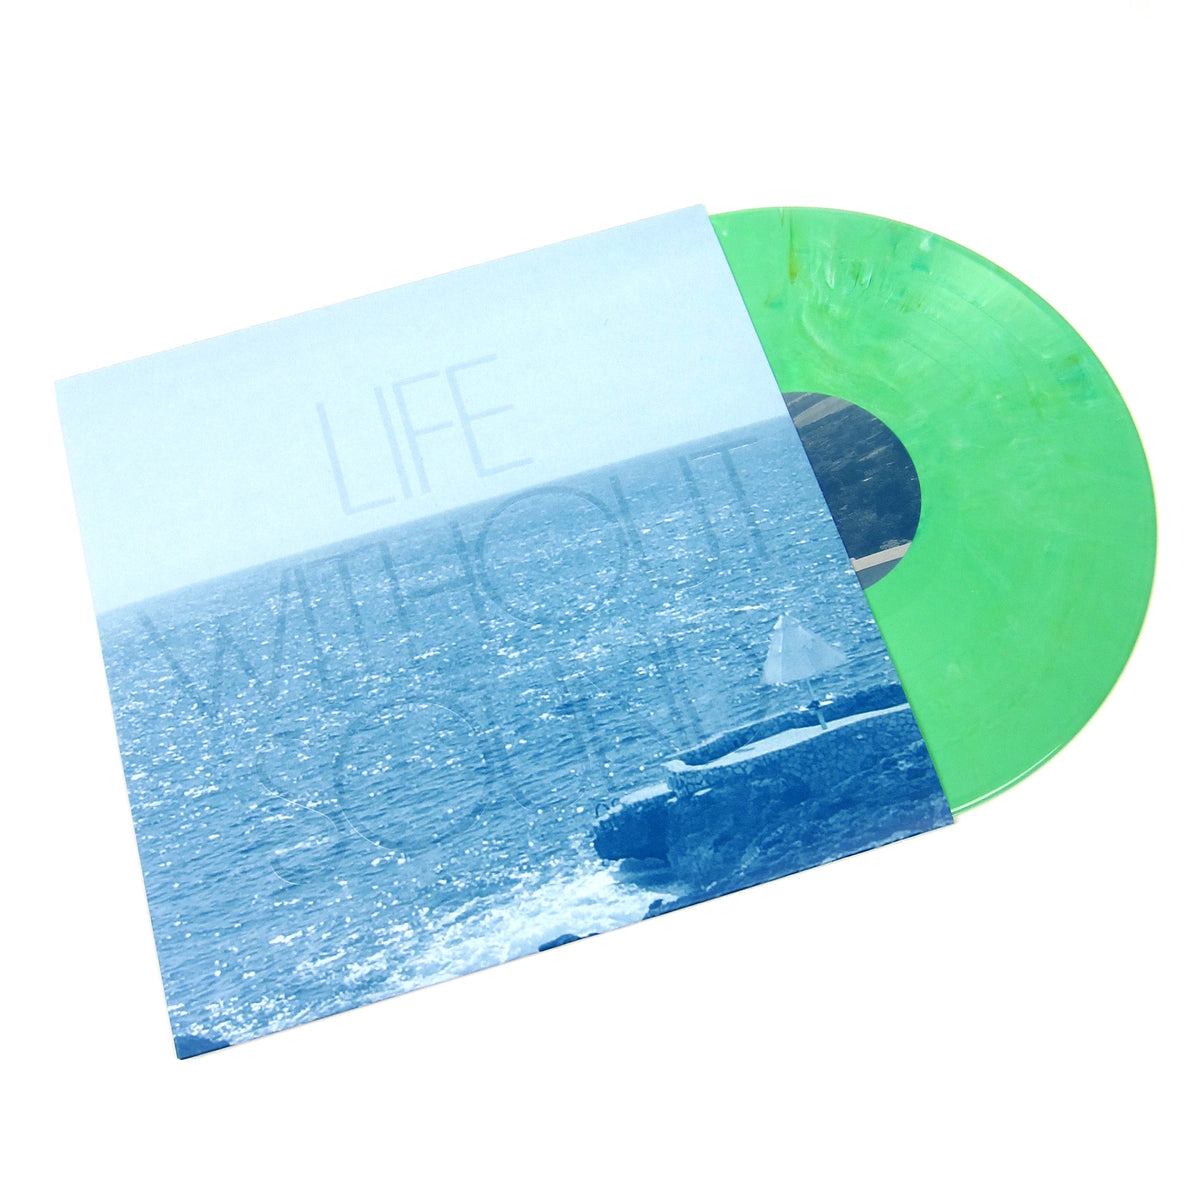 Cloud Nothings: Life Without Sound (Indie Exclusive Colored Vinyl) Vinyl LP